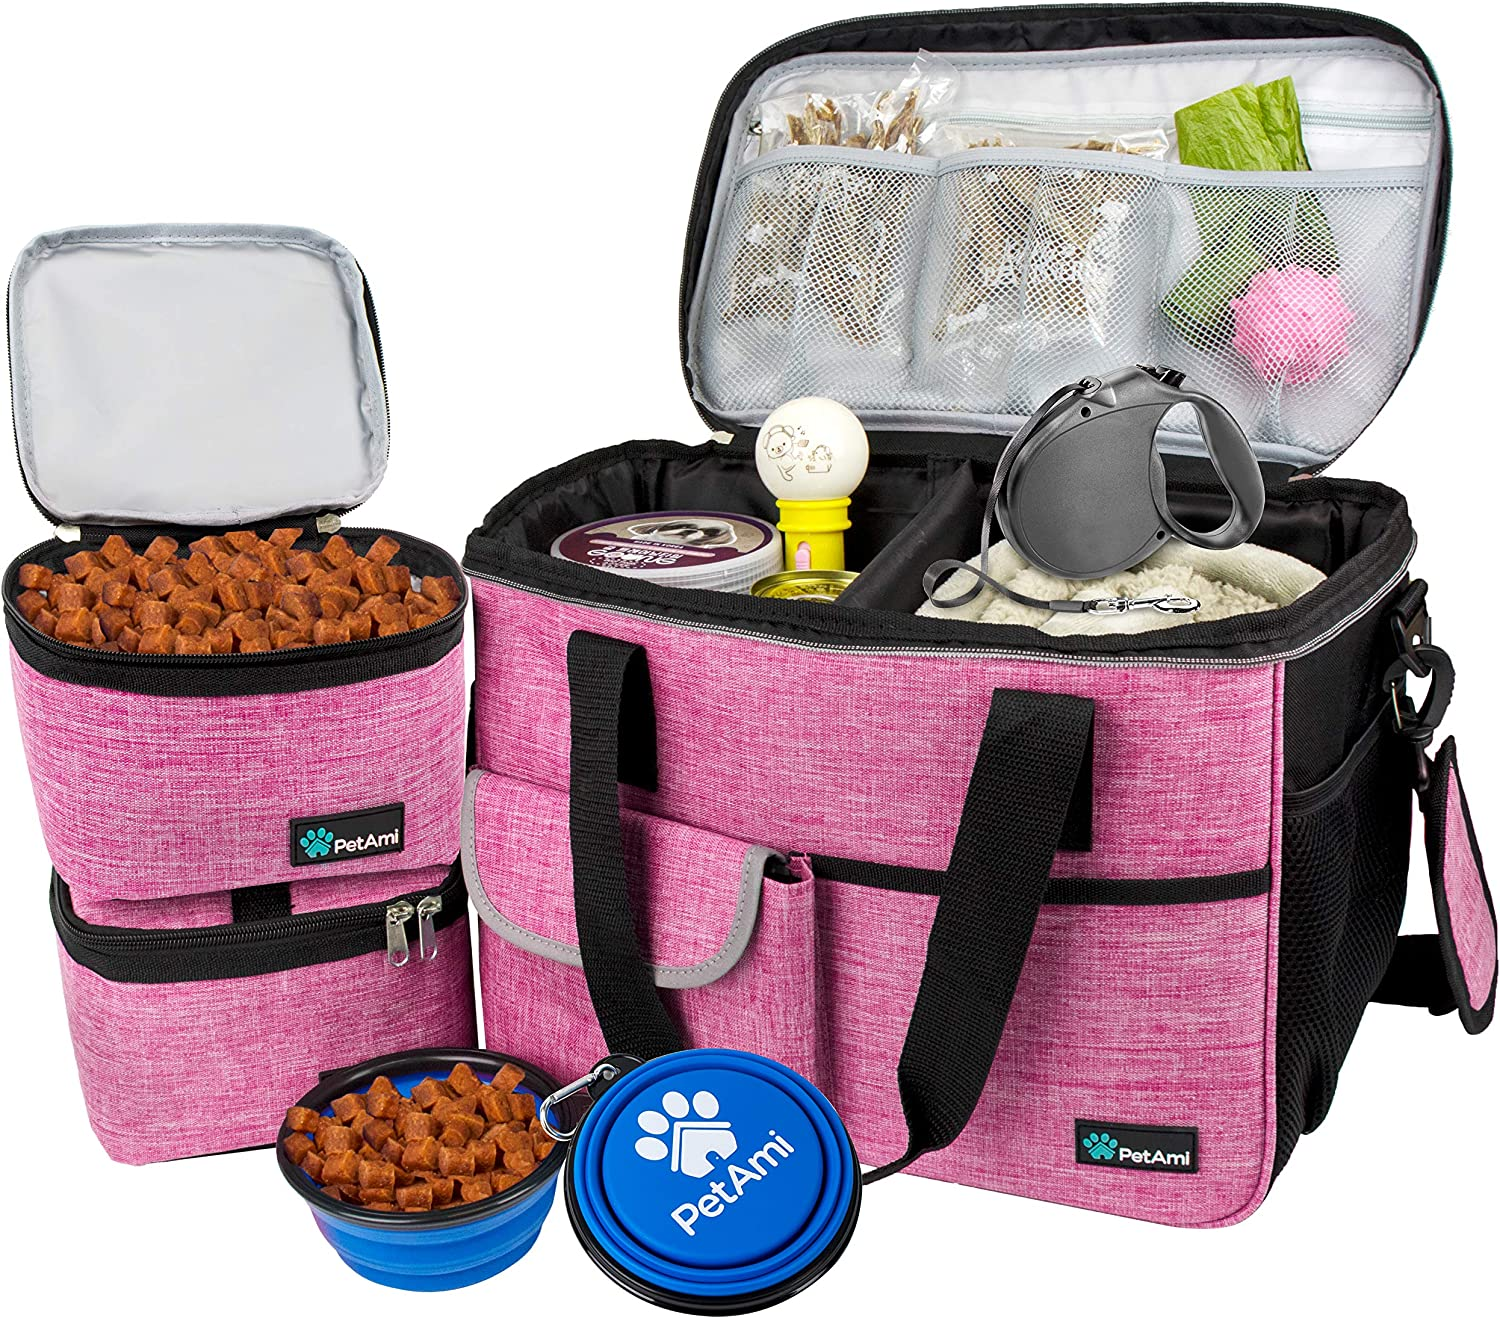 PetAmi Dog Travel Bag | Airline Approved Tote Organizer with Multi-Function Pockets, Food Container Bag and Collapsible Bowl | Perfect Weekend Pet Travel Set for Dog, Cat (Pink, Small)